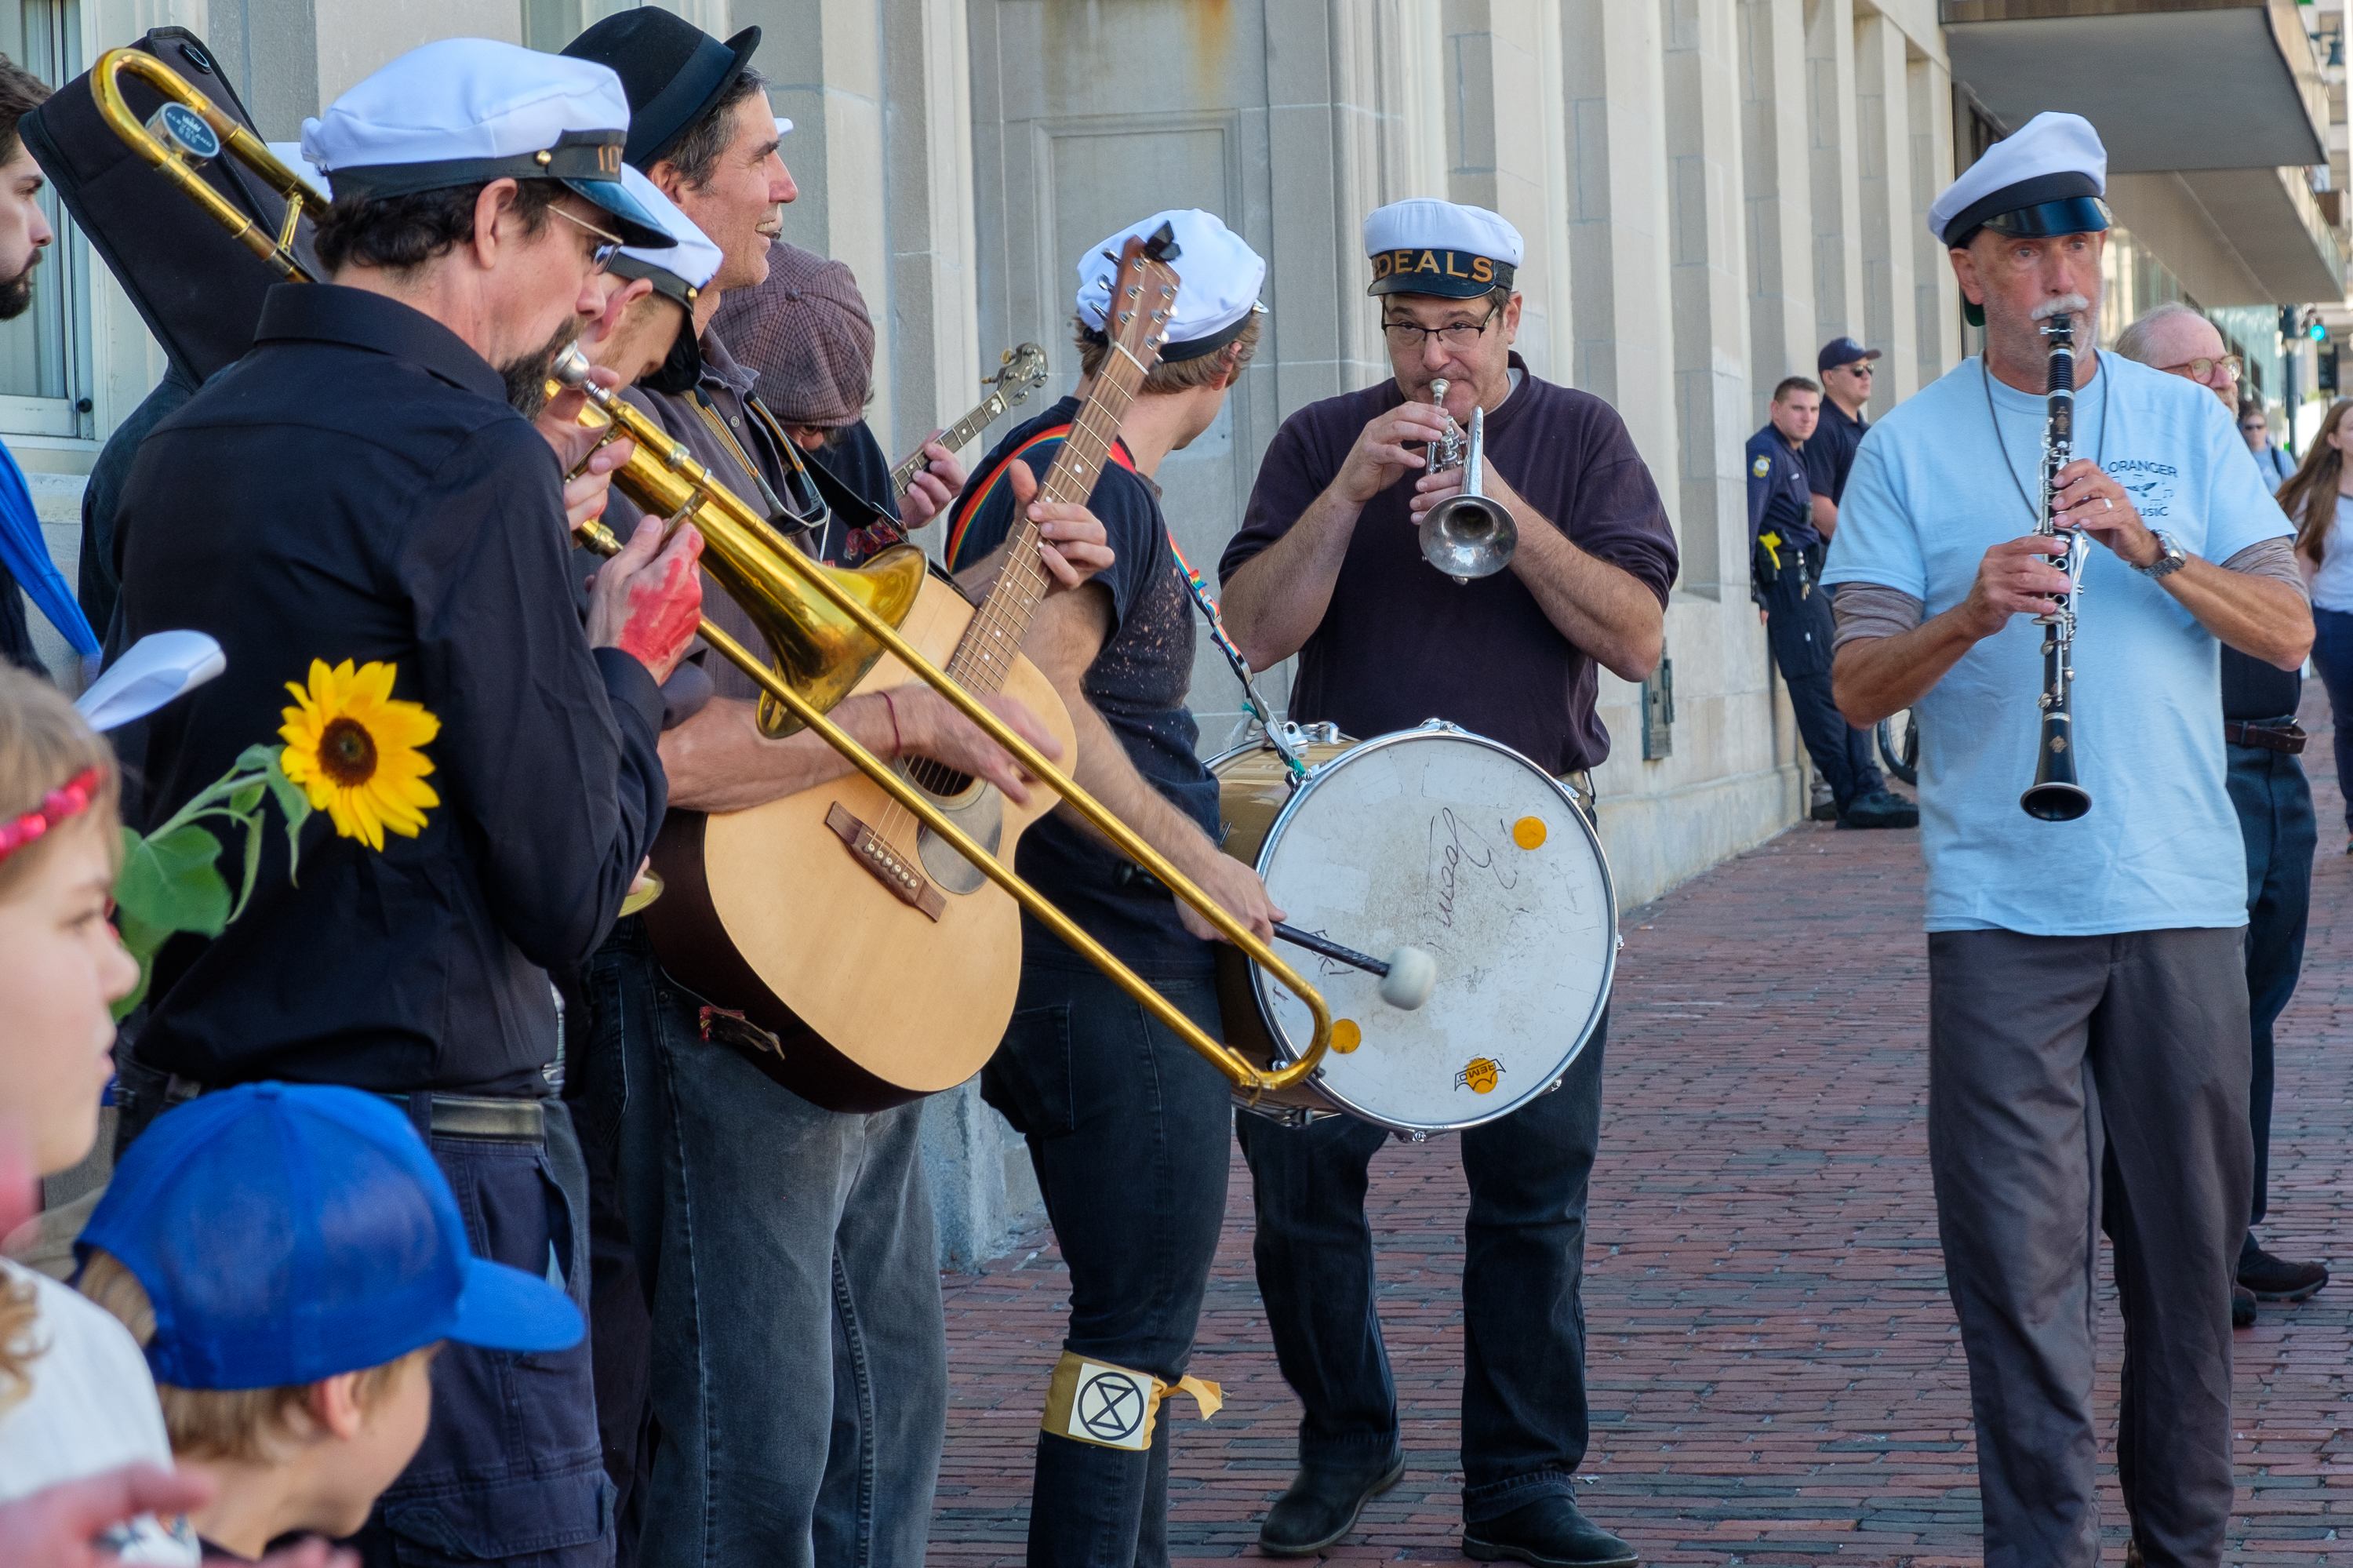 Musical Band at Global Warming Protest